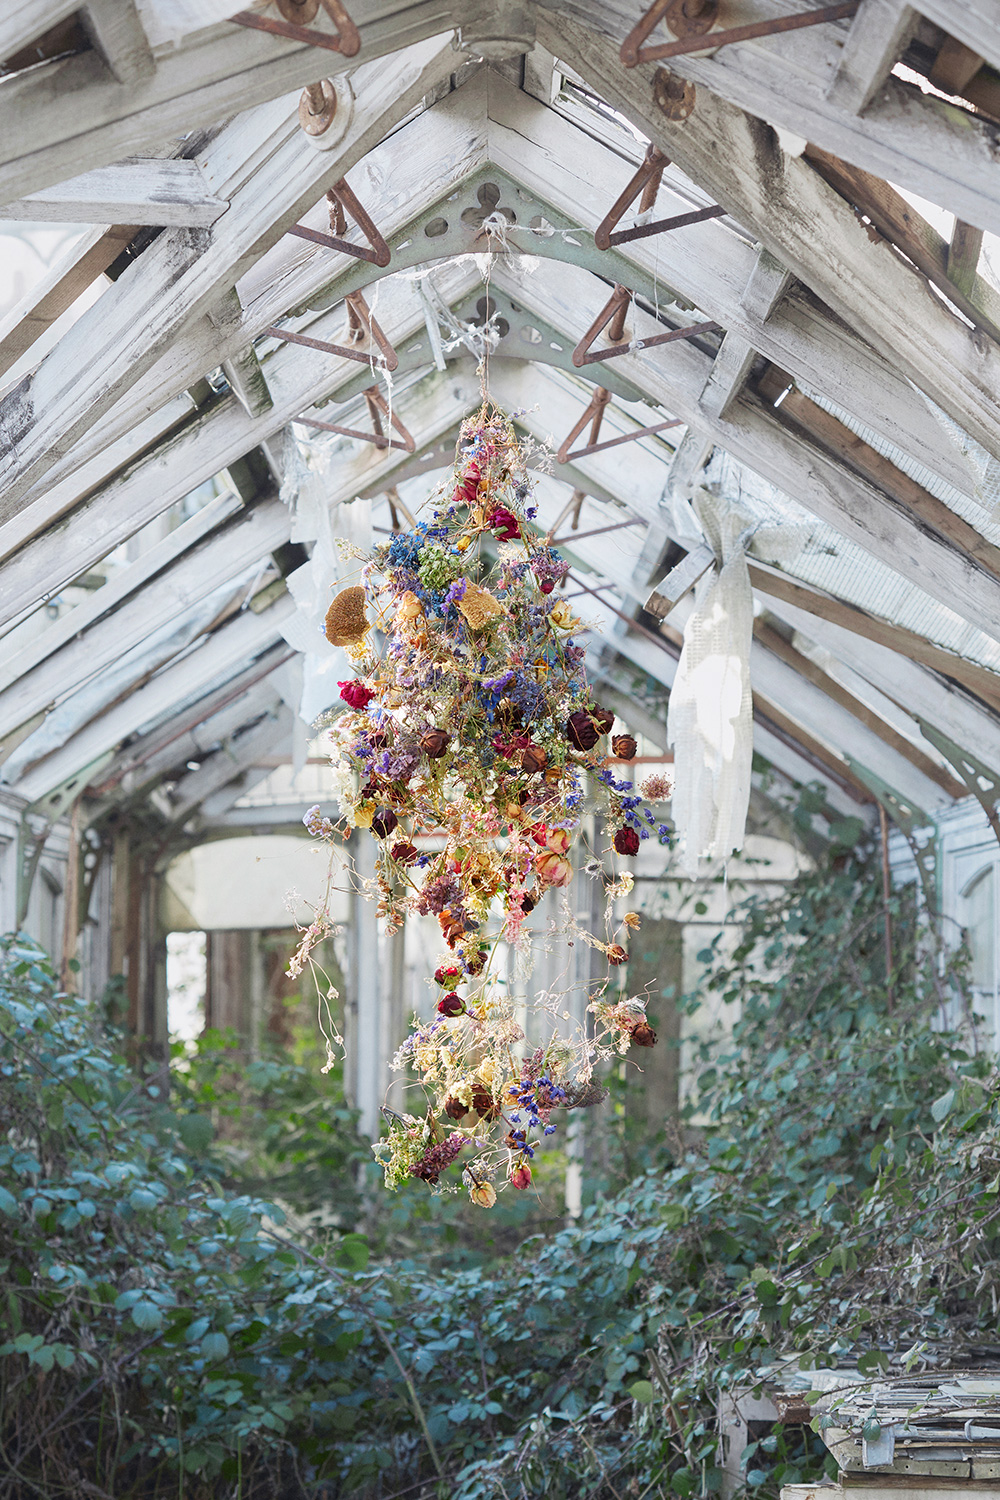 Rebecca Louise Law: Painting on Air